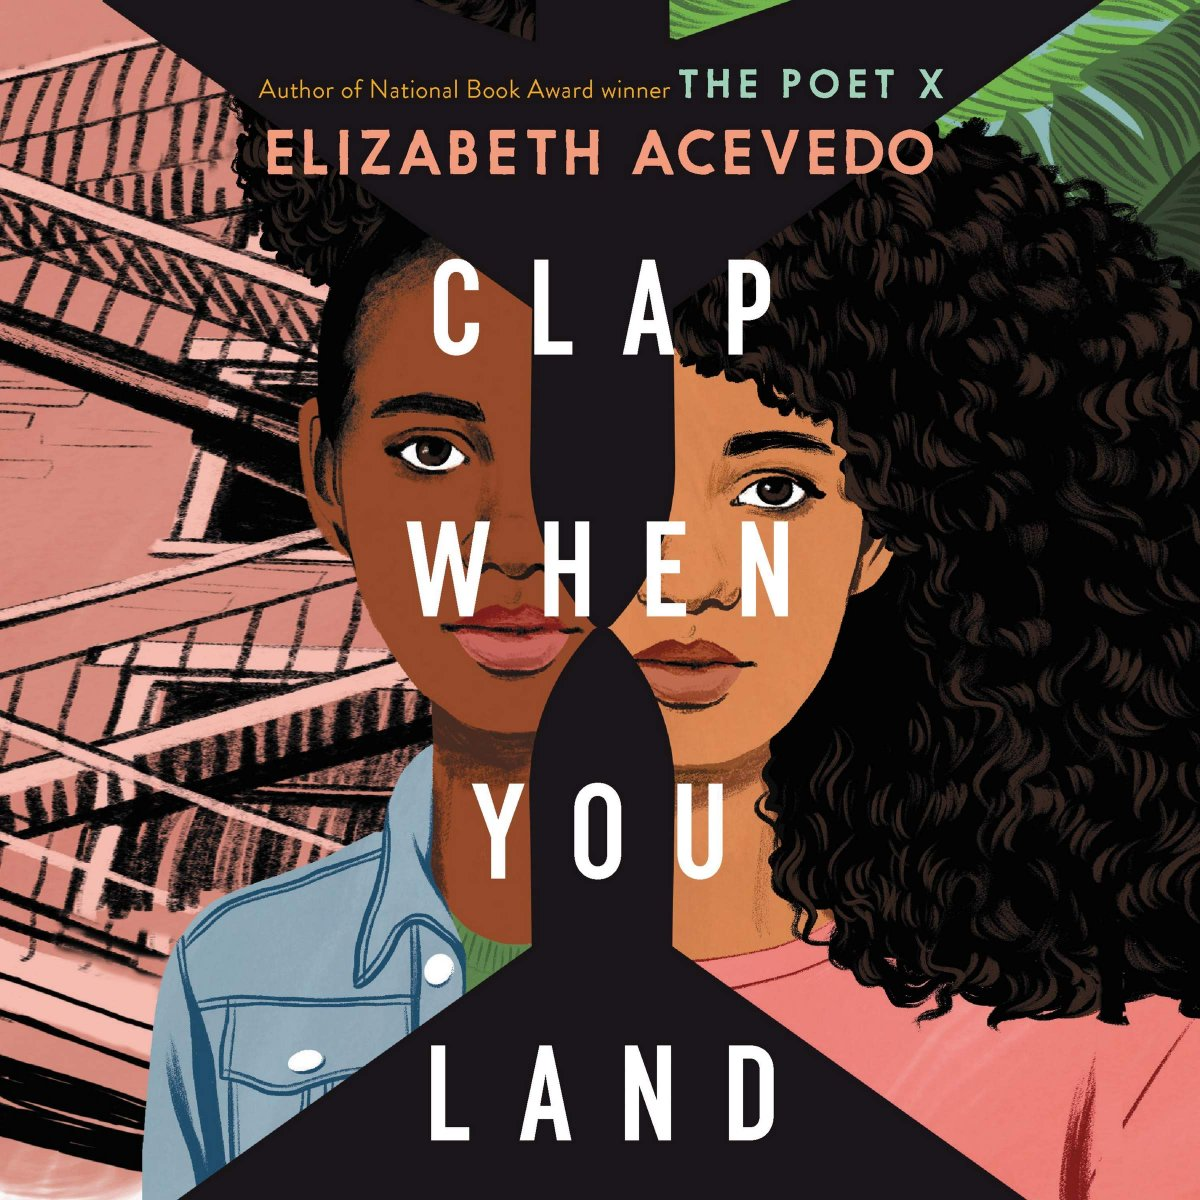 Staff pick: Clap When You Land by <a target='_blank' href='http://twitter.com/AcevedoWrites'>@AcevedoWrites</a> beautifully written in verse where the father of 2 girls, unaware of each other's existence dies in a plane crash. This is a story of grief, betrayal, and family secrets.  <a target='_blank' href='http://search.twitter.com/search?q=YHSStaffpicks'><a target='_blank' href='https://twitter.com/hashtag/YHSStaffpicks?src=hash'>#YHSStaffpicks</a></a> <a target='_blank' href='http://twitter.com/APSLibrarians'>@APSLibrarians</a>  <a target='_blank' href='https://t.co/cg5PCJTHTX'>https://t.co/cg5PCJTHTX</a> <a target='_blank' href='https://t.co/tPhQvNRDmk'>https://t.co/tPhQvNRDmk</a>